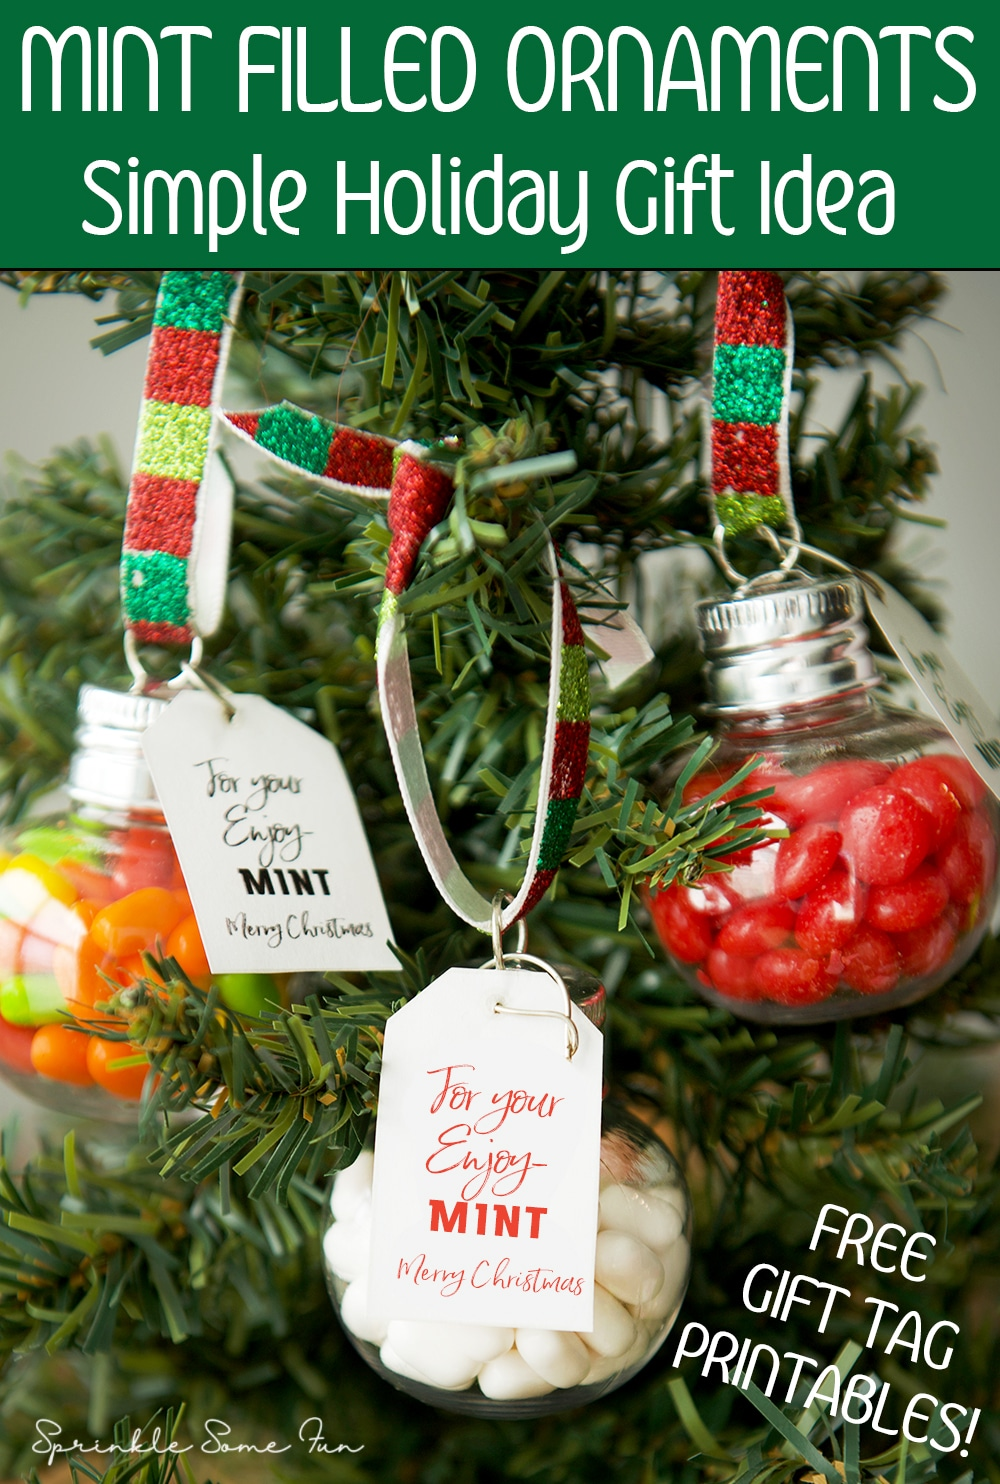 These Mint Filled Ornaments are a simple holiday gift idea you can give to everyone! They also make the perfect stocking stuffers or party favors.